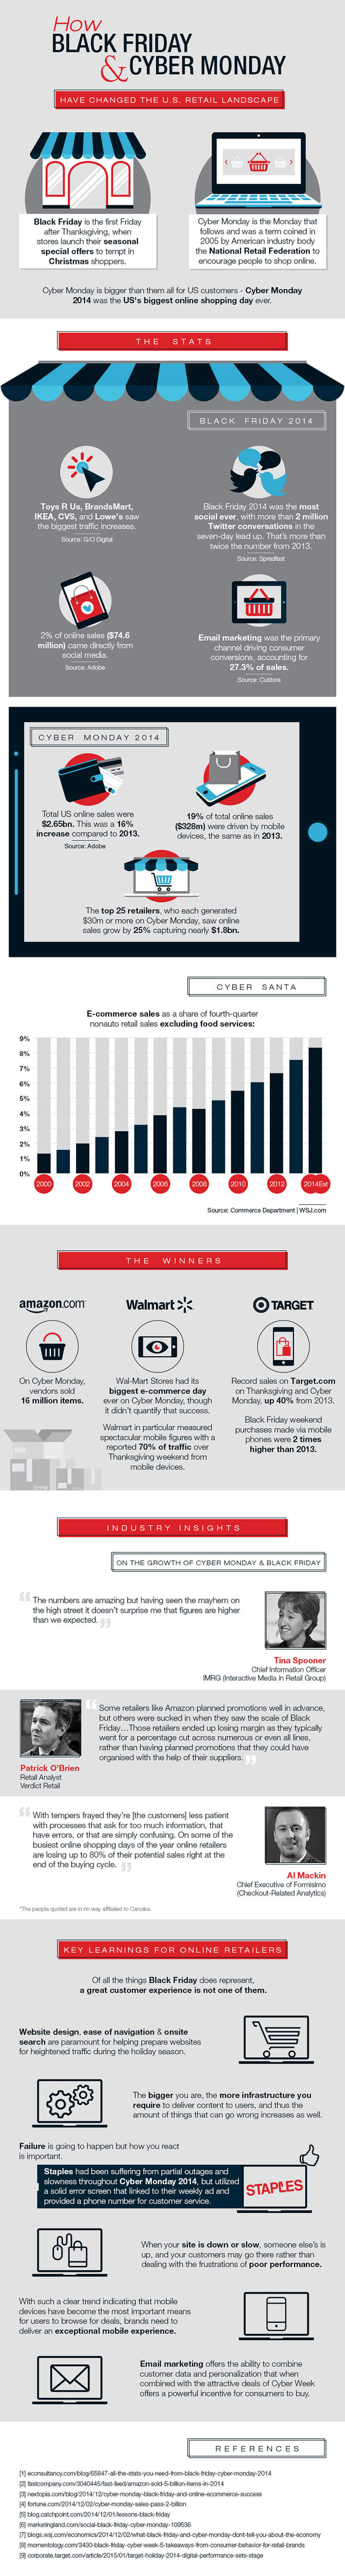 Infographic: How Black Friday and Cyber Monday have changed the US retail landscape